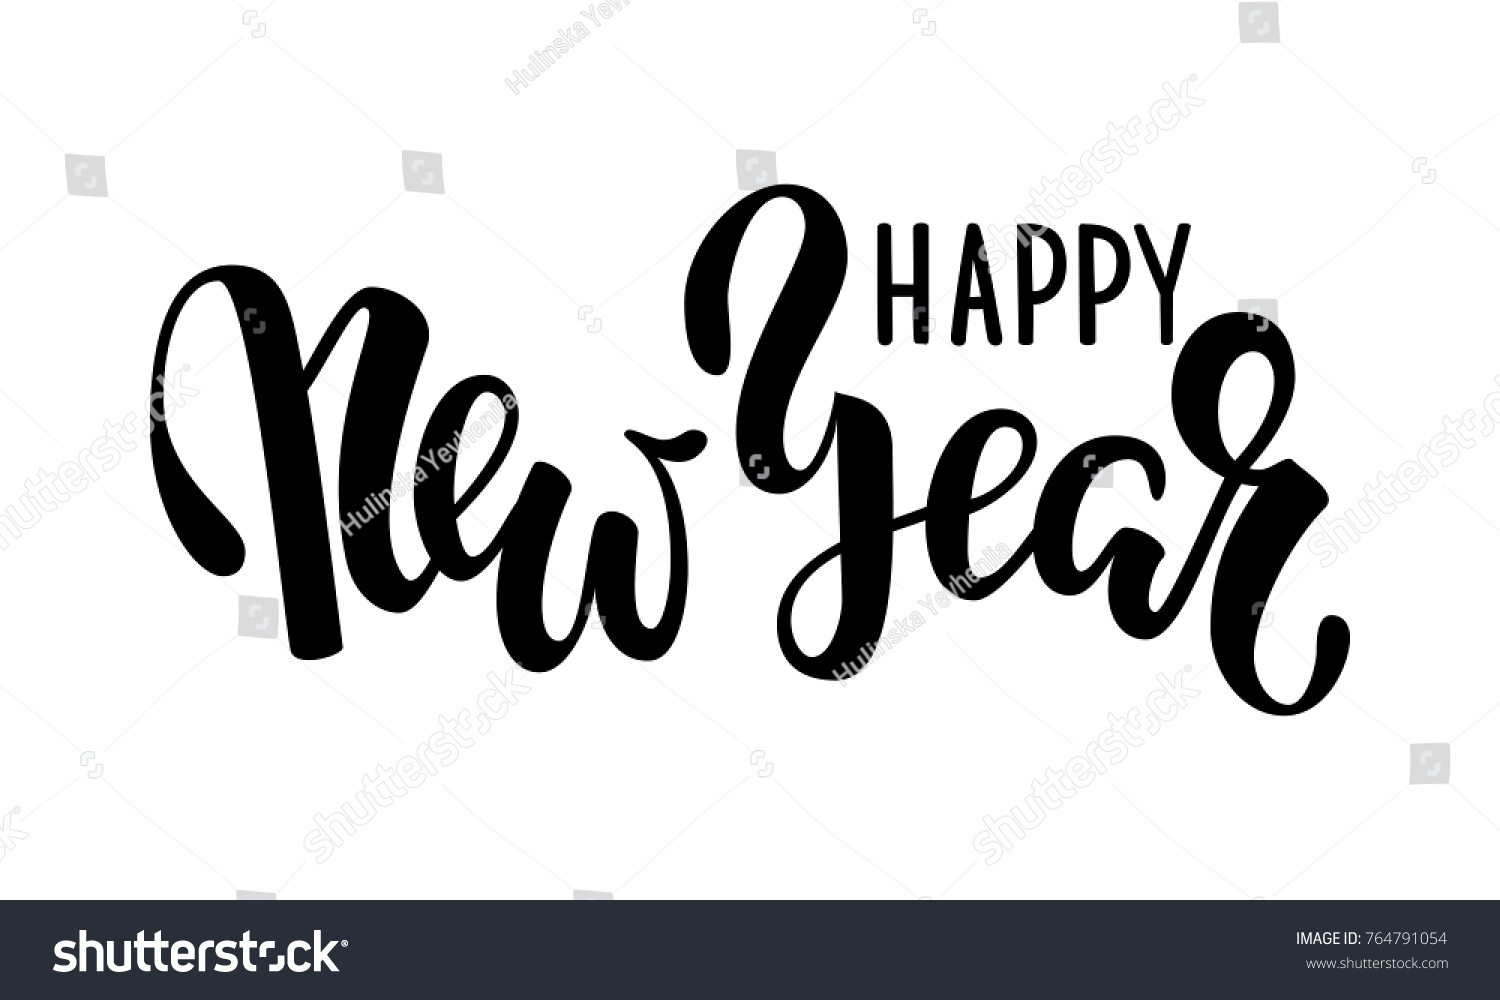 happy new year hand drawn creative calligraphy brush pen lettering design holiday greeting